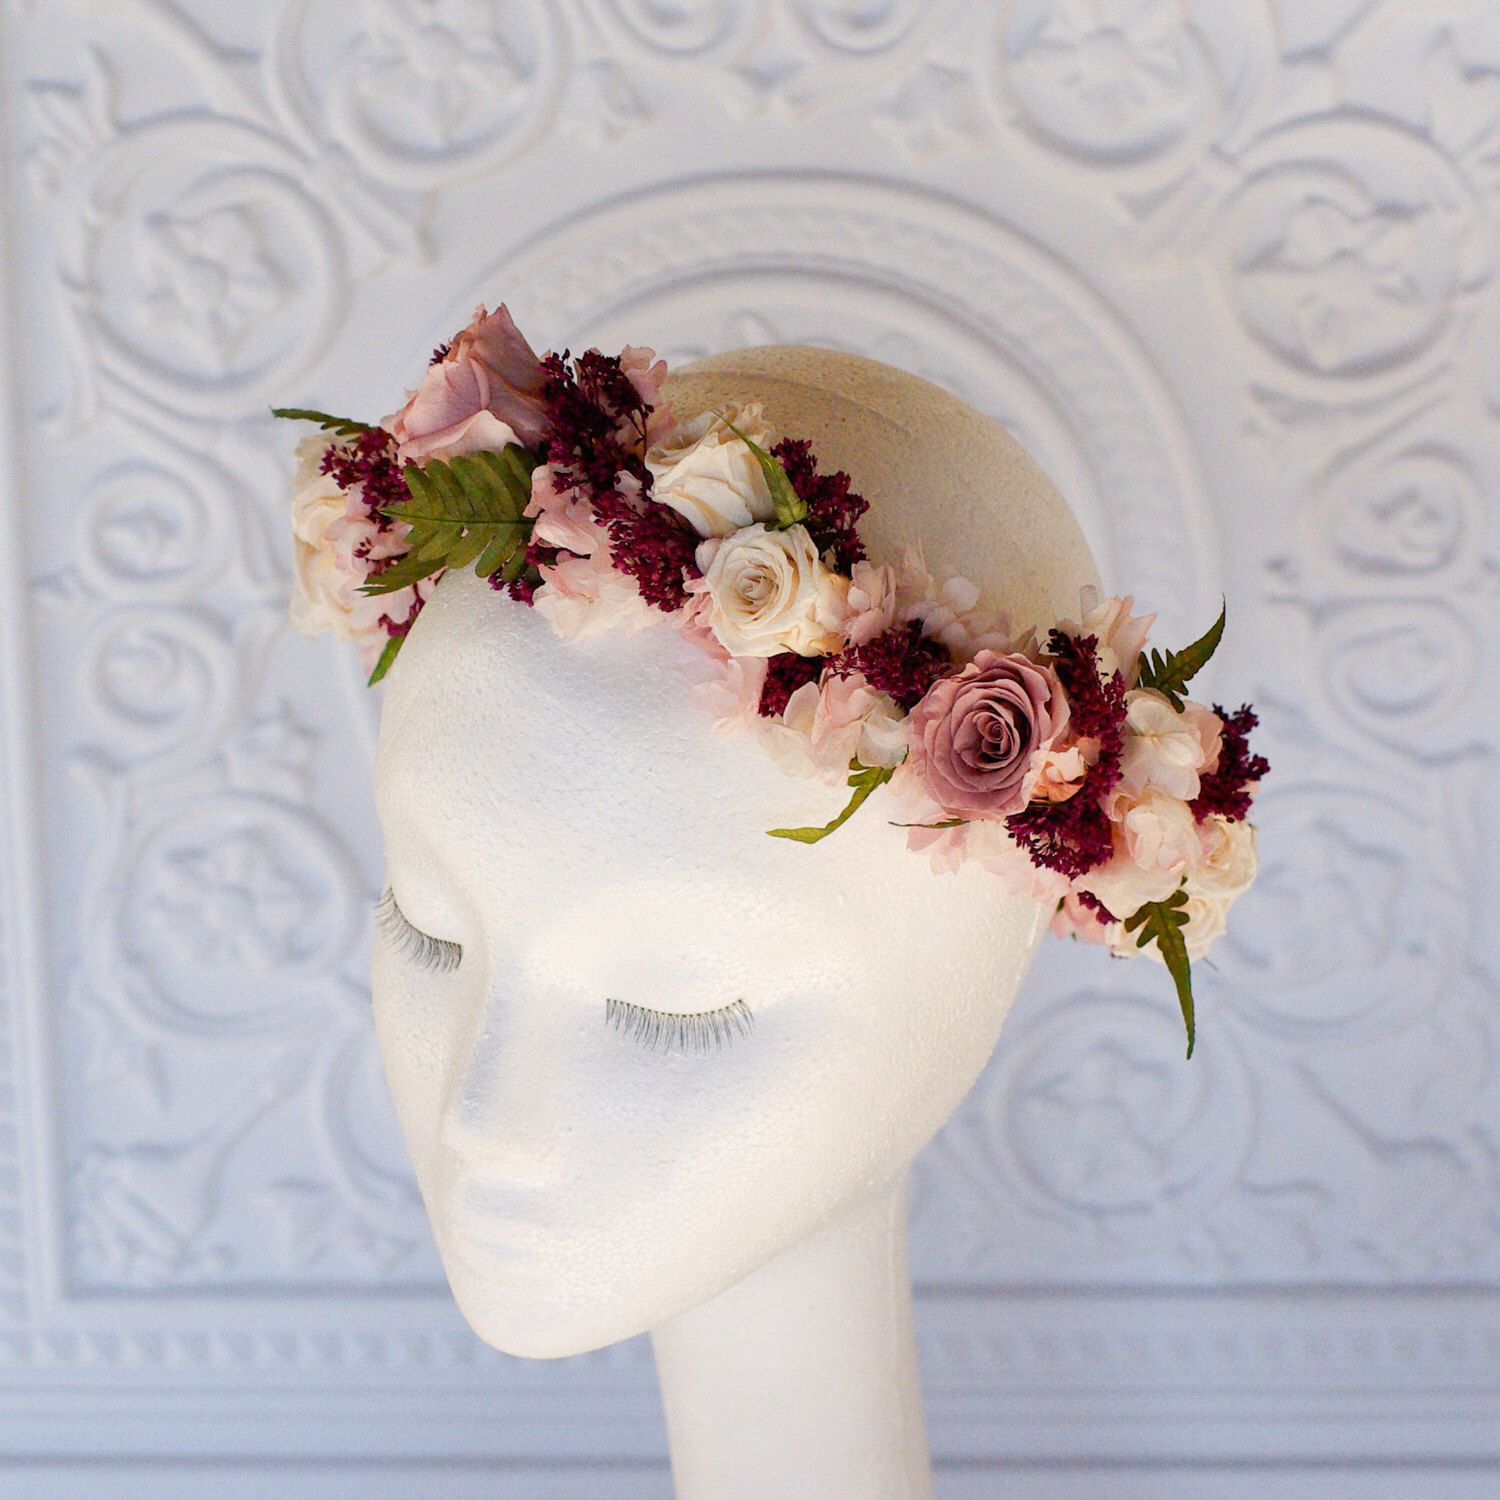 Flower crown in dusty rose marsala ferns blush pink and ivory a floral crown made with all real preserved flowers that will not wilt on your wedding day made with roses hydrangea and ferns in shades of blush izmirmasajfo